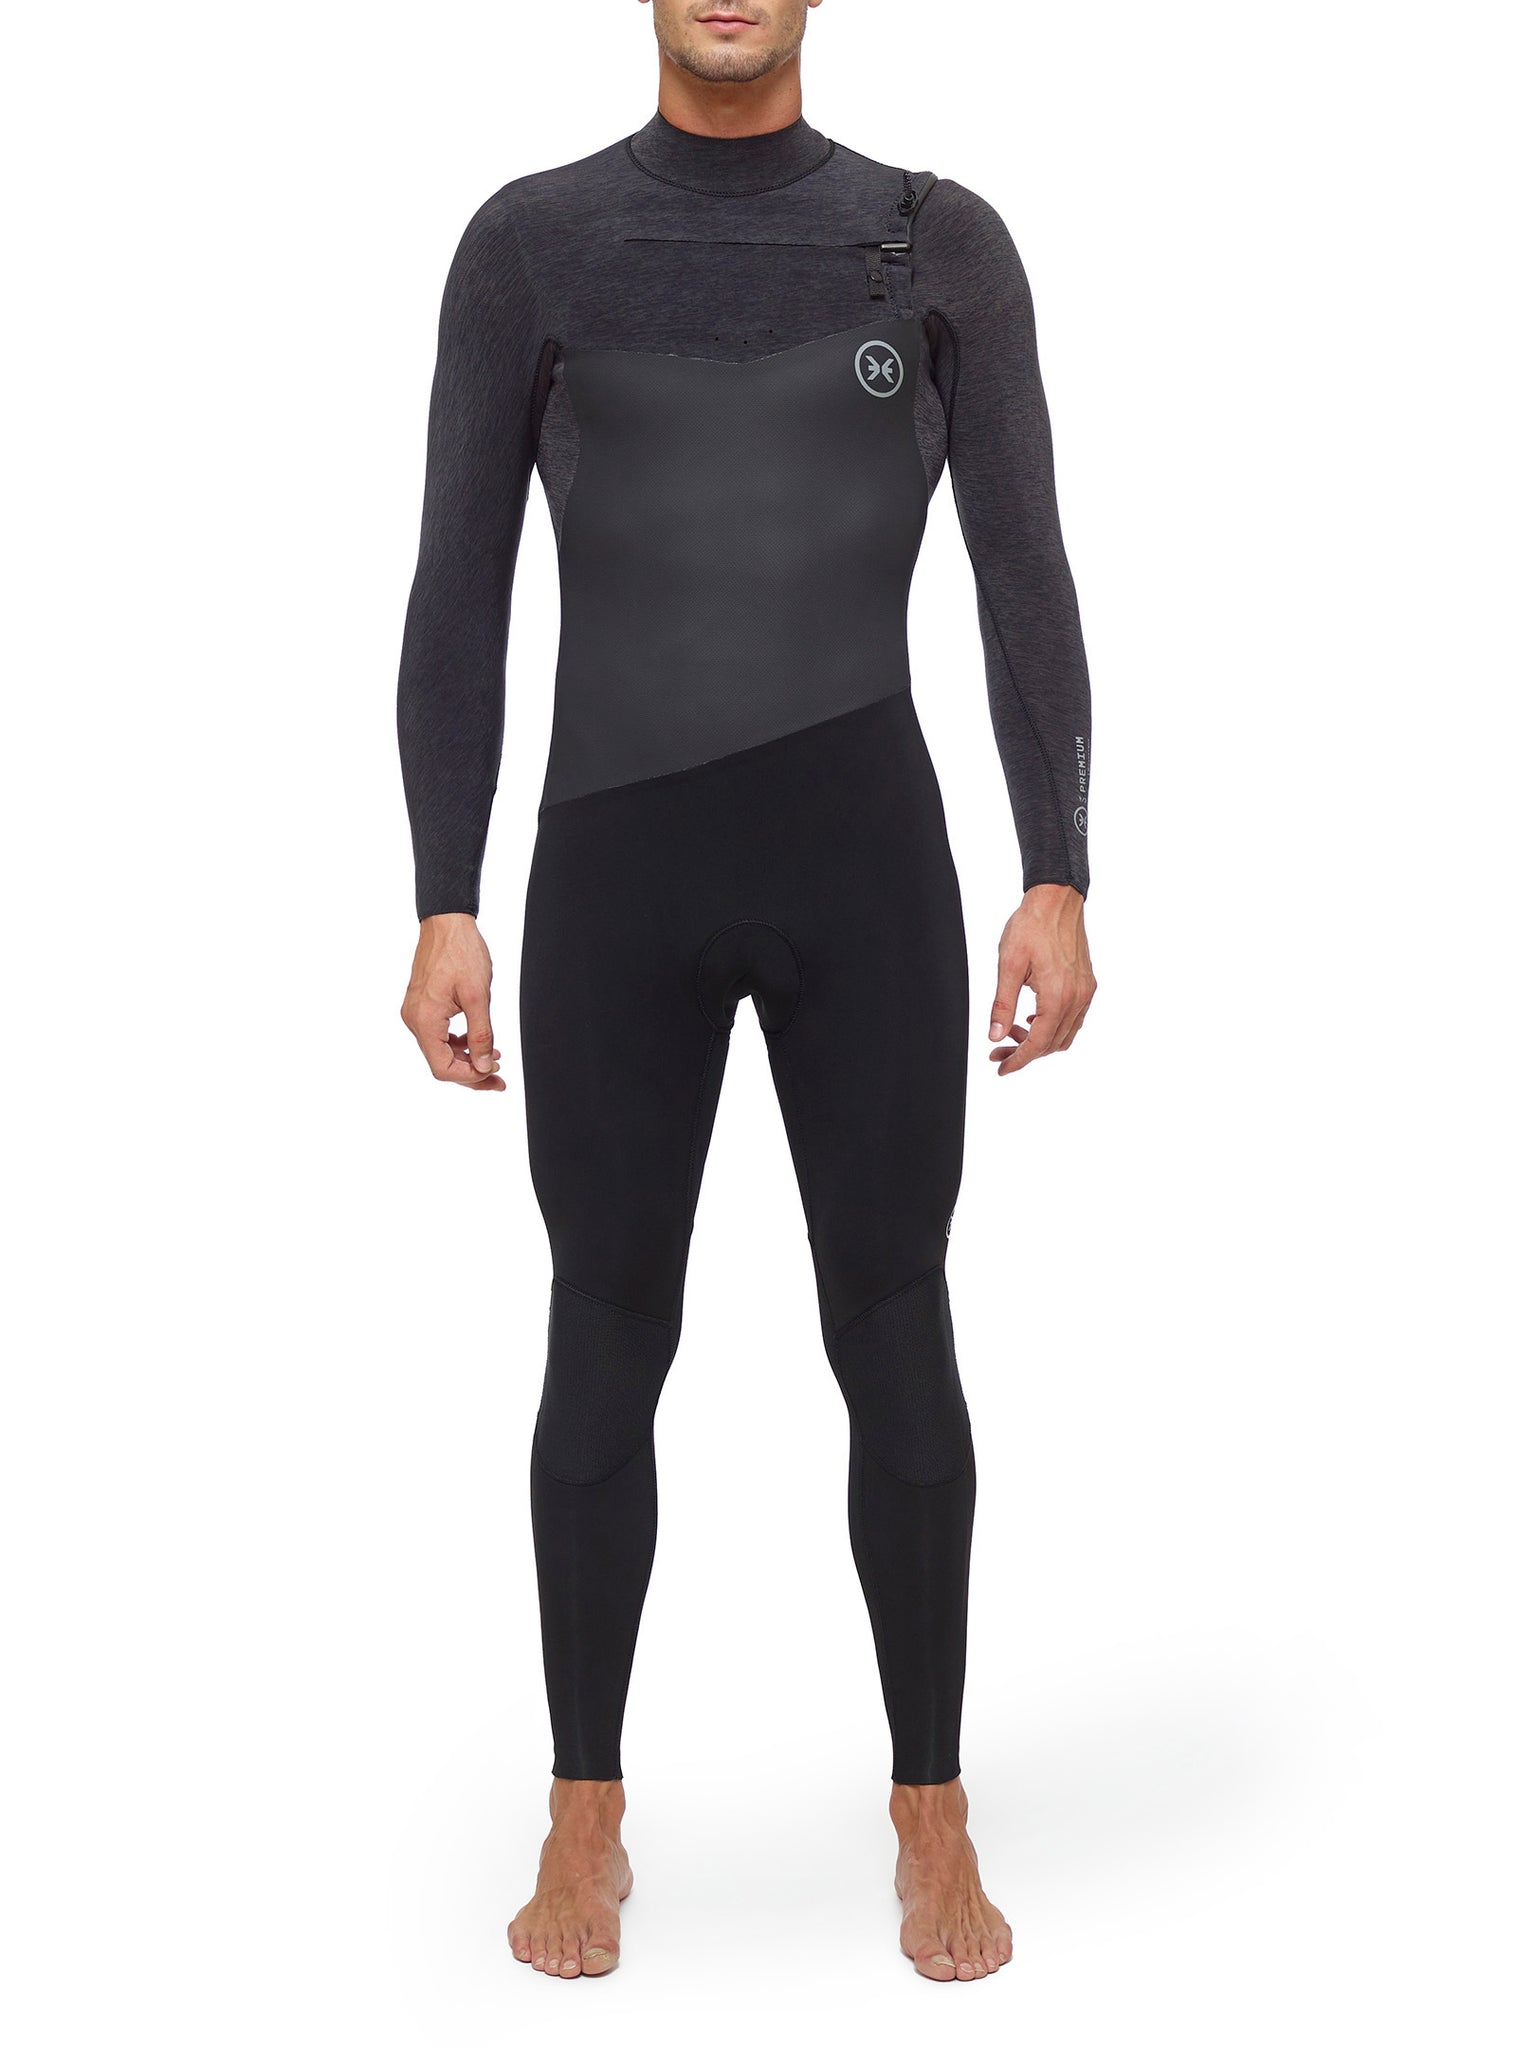 Wetsuit Man Premium 4/3 Chest Zip Dark Grey